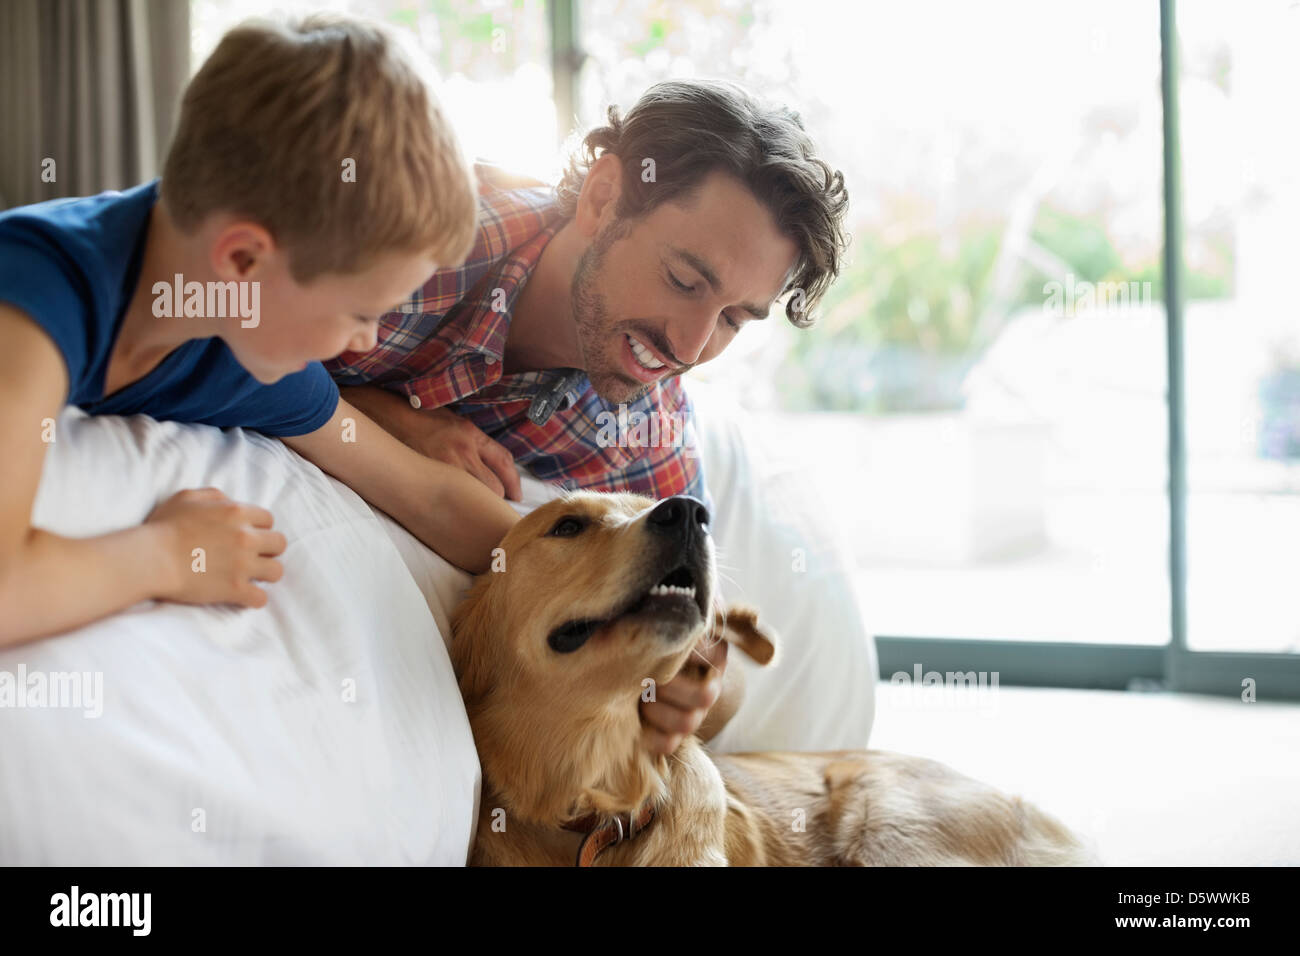 Father and son petting dog on sofa - Stock Image